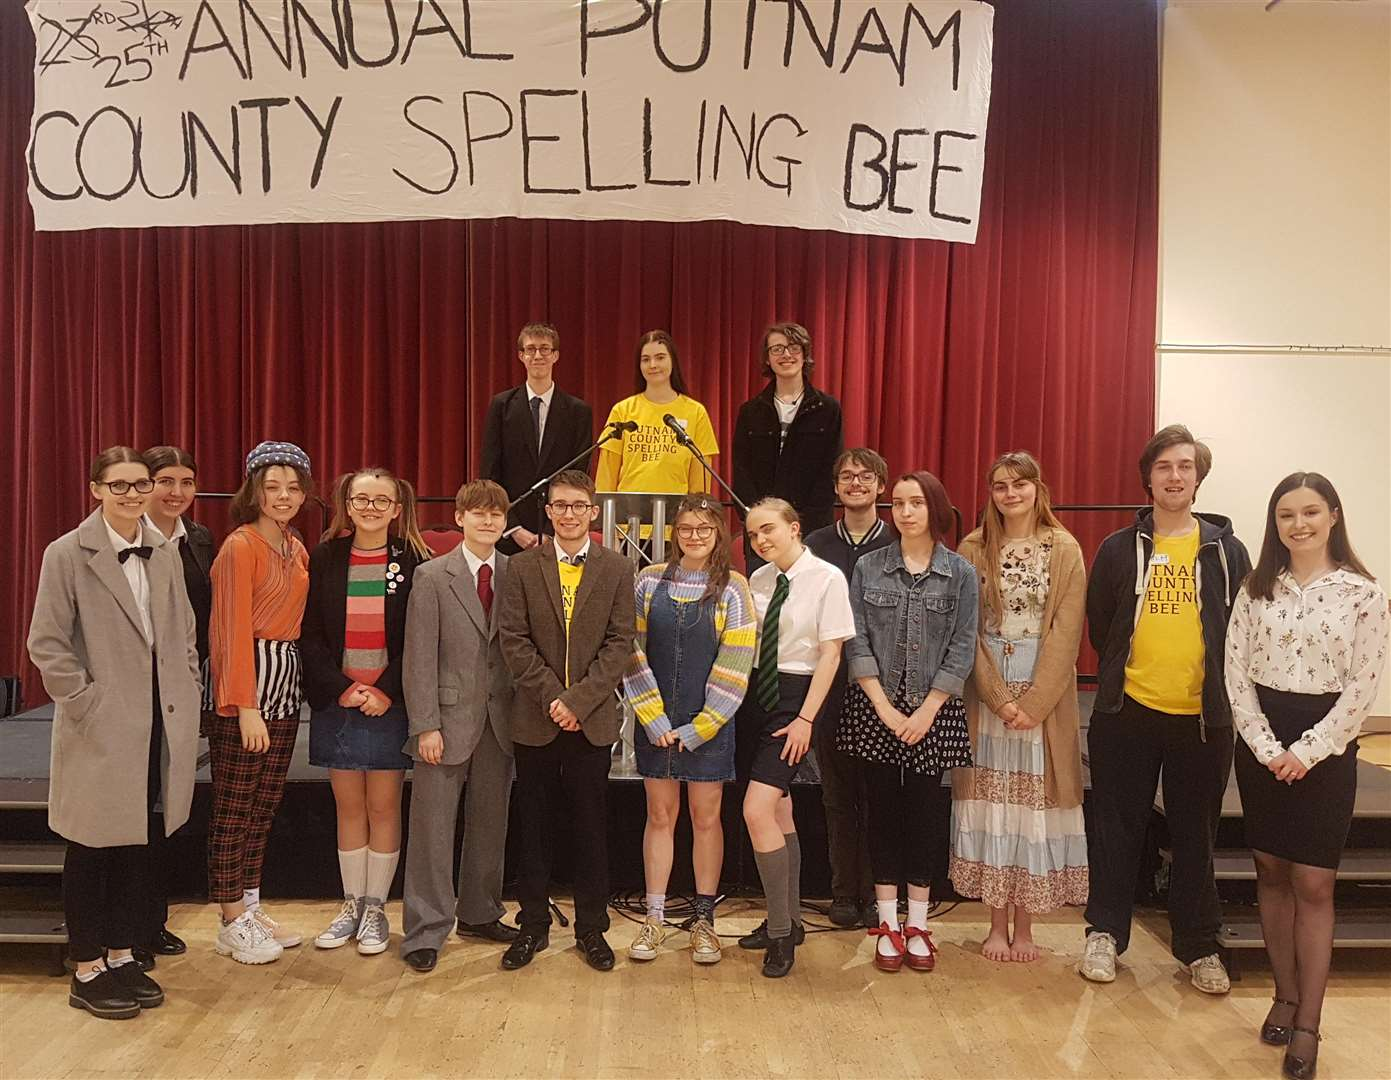 The cast of Act II's musical, The 25th Annual Putnam County Spelling Bee, at South Holland Centre, Spalding. Photo by Karl Gernert. (7226162)